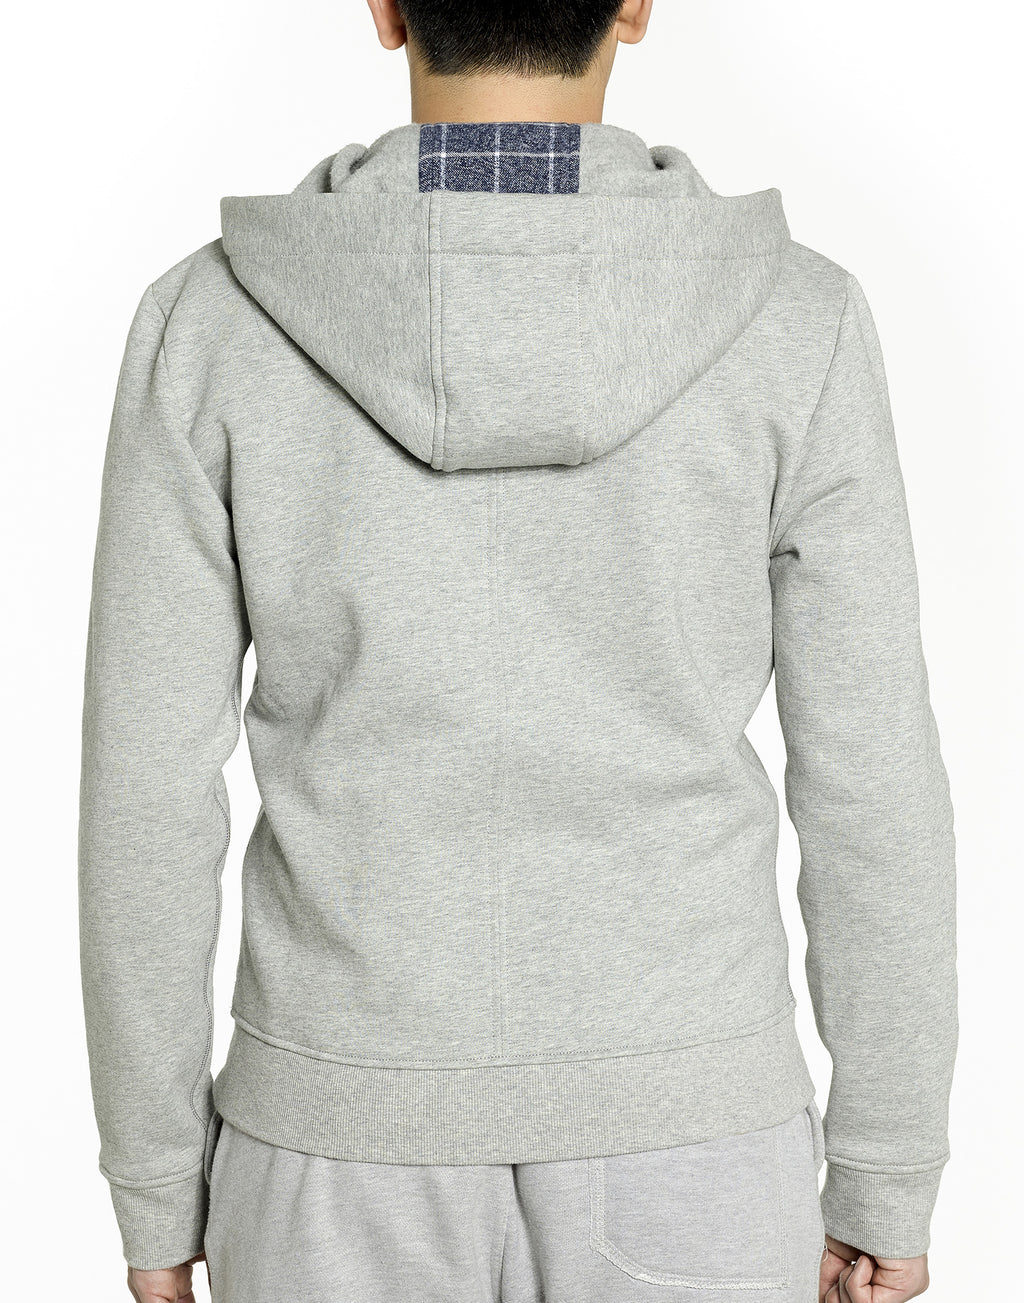 Grey Zip-up Hoodie